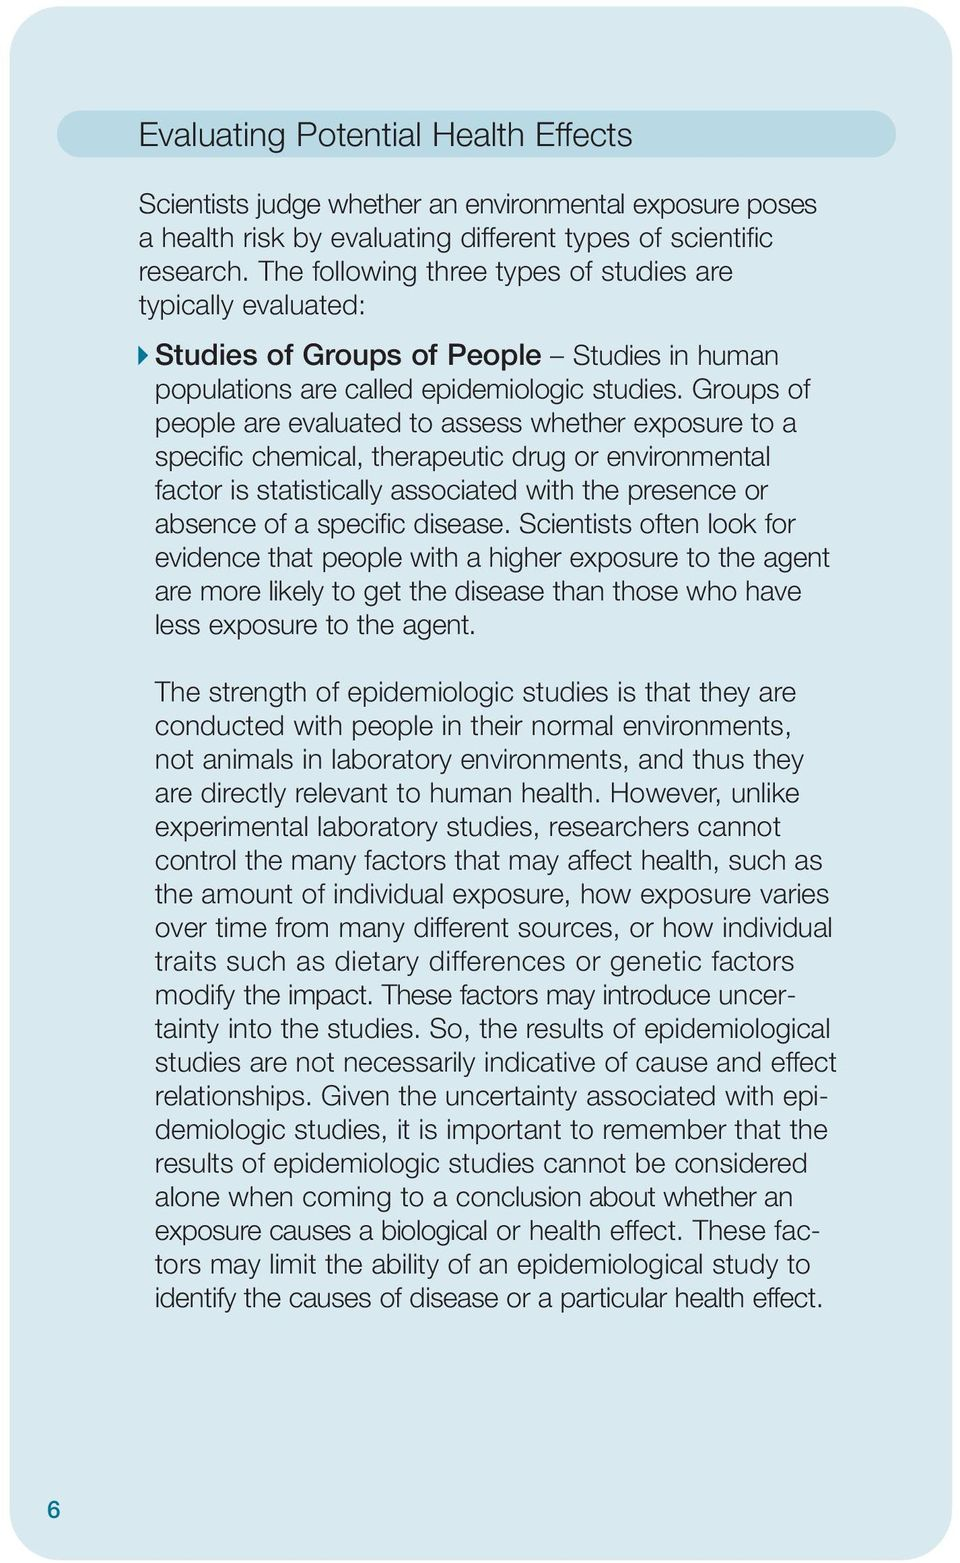 Groups of people are evaluated to assess whether exposure to a specific chemical, therapeutic drug or environmental factor is statistically associated with the presence or absence of a specific